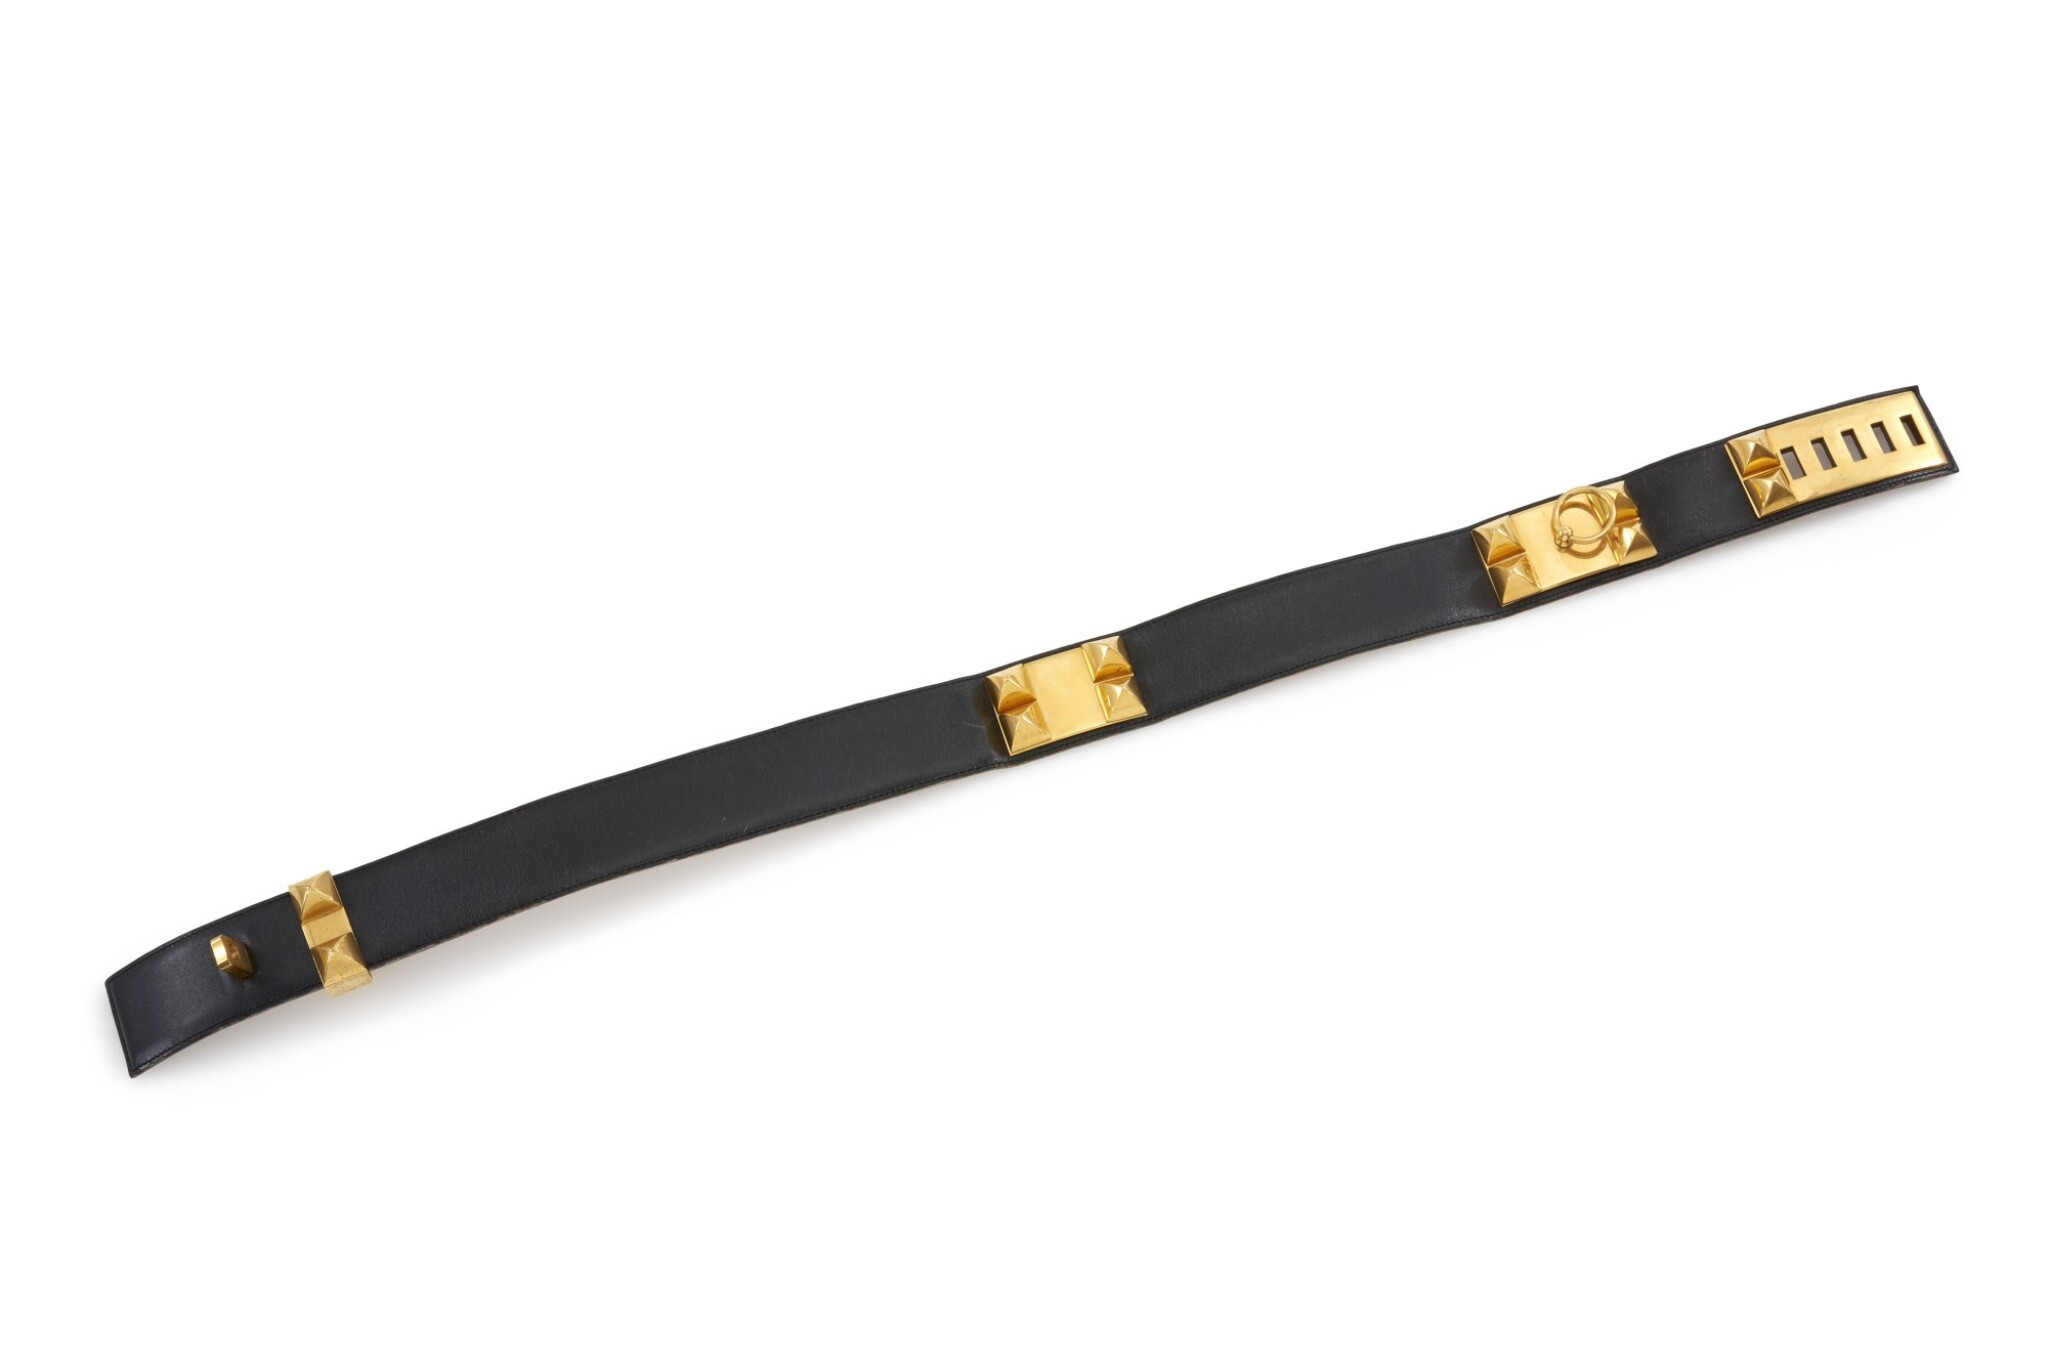 Leather and gold plated hardware belt, Collier de chien 75, Hermès, 1991